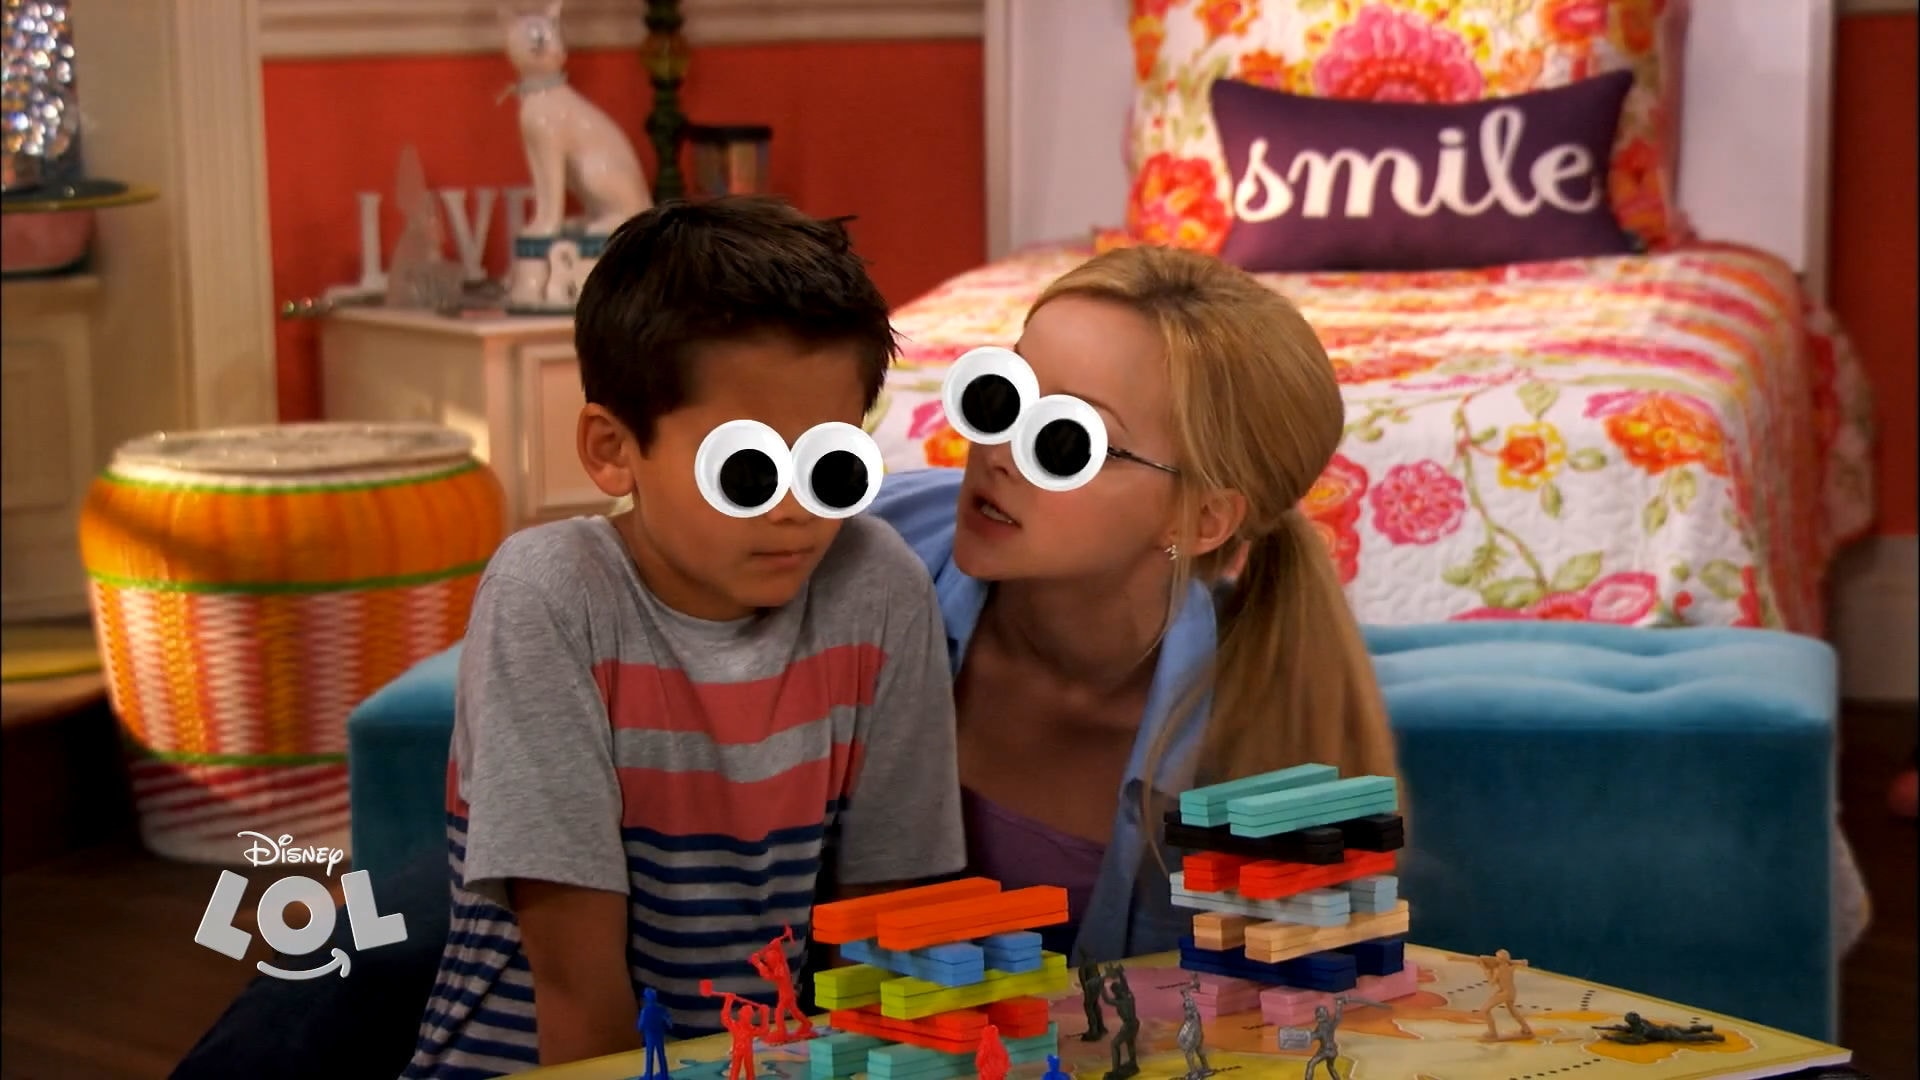 Liv and Maddie LOL #3